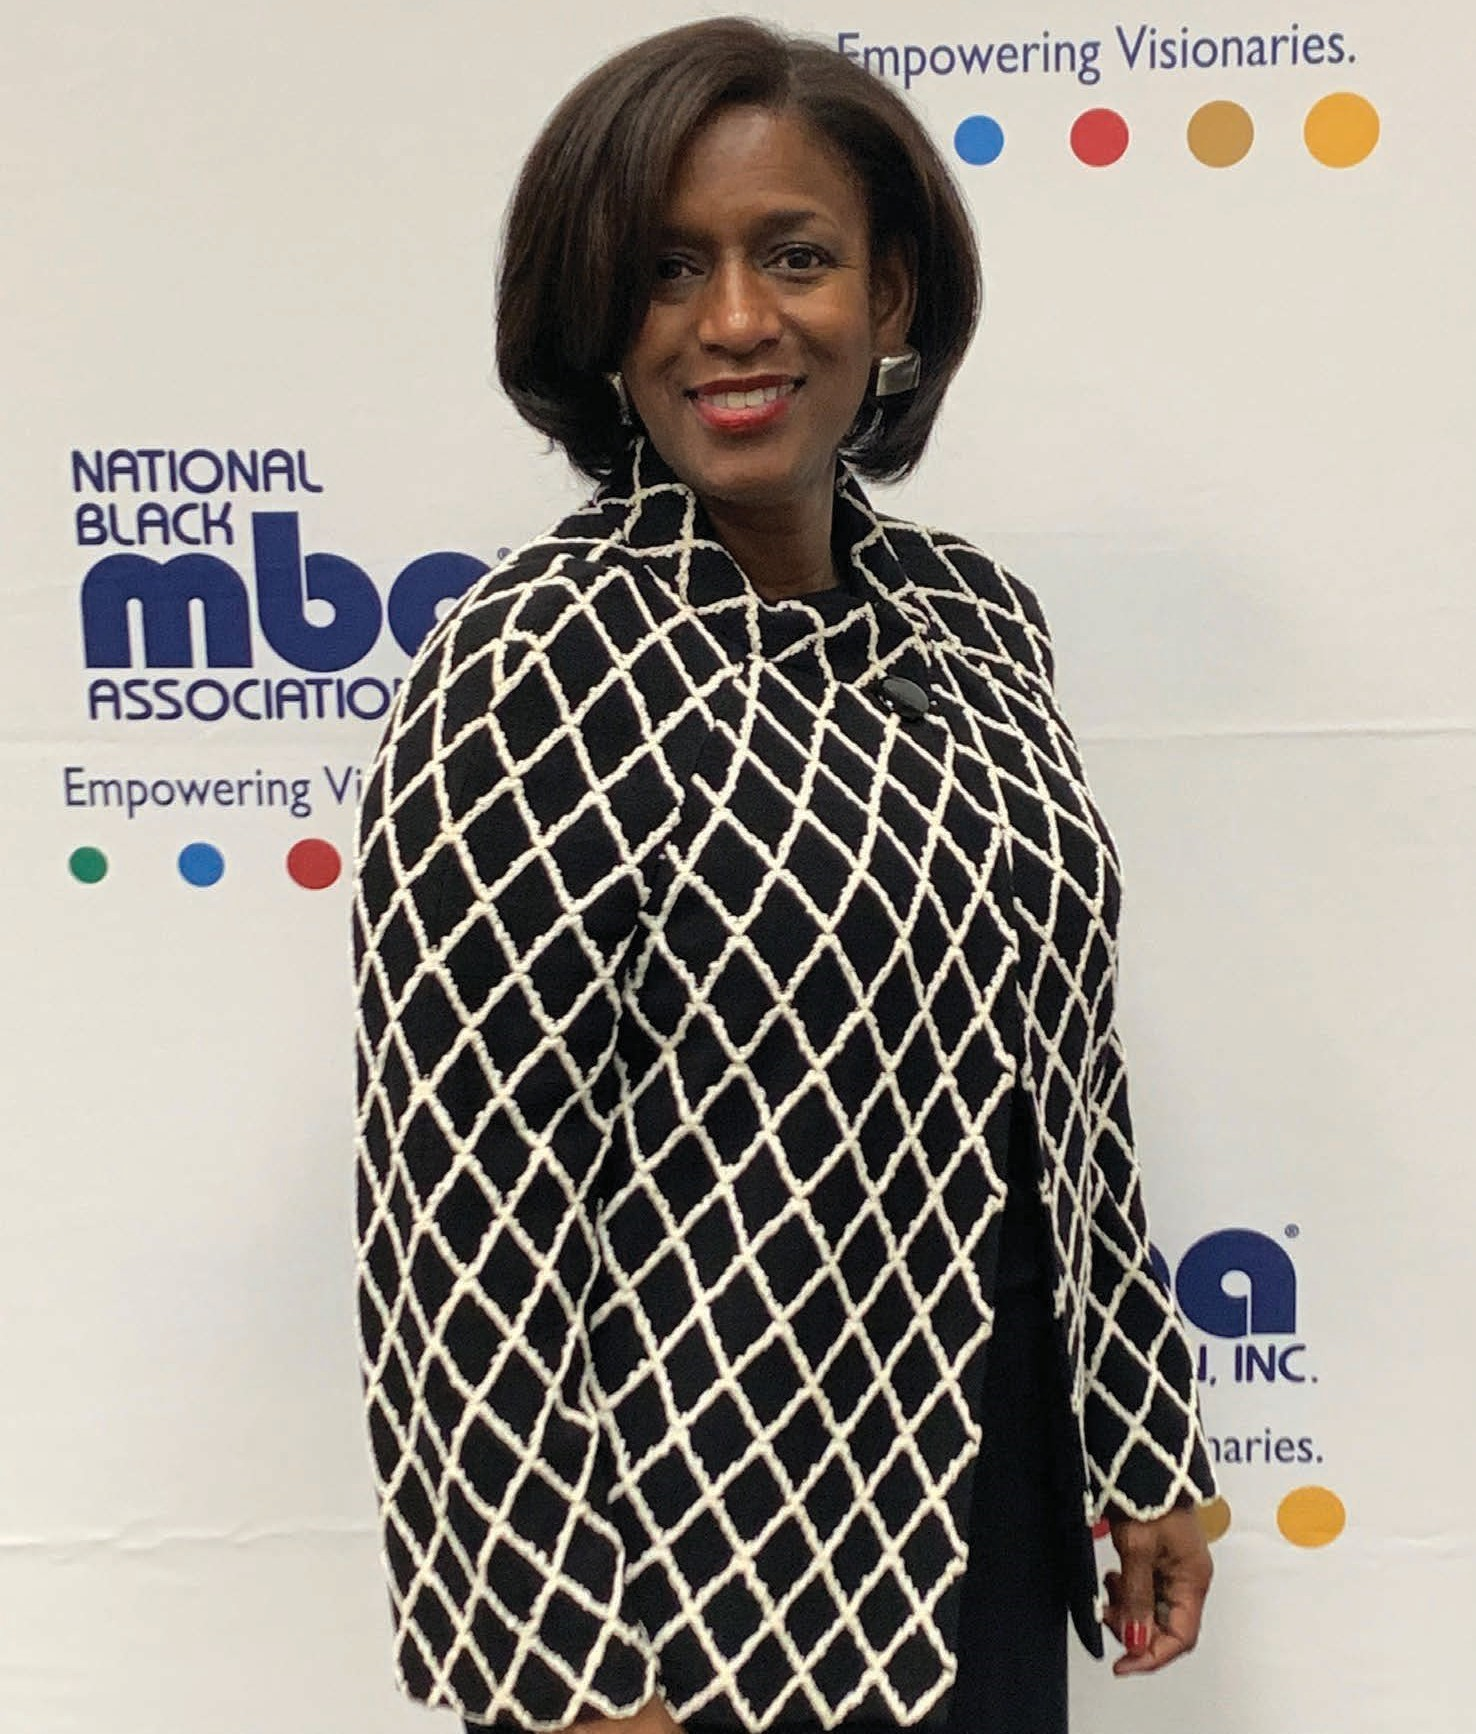 Kay Wallace of the National Black MBA Association stands with a dress suit on in front of a NBMBAA logo filled canvas for picture taking